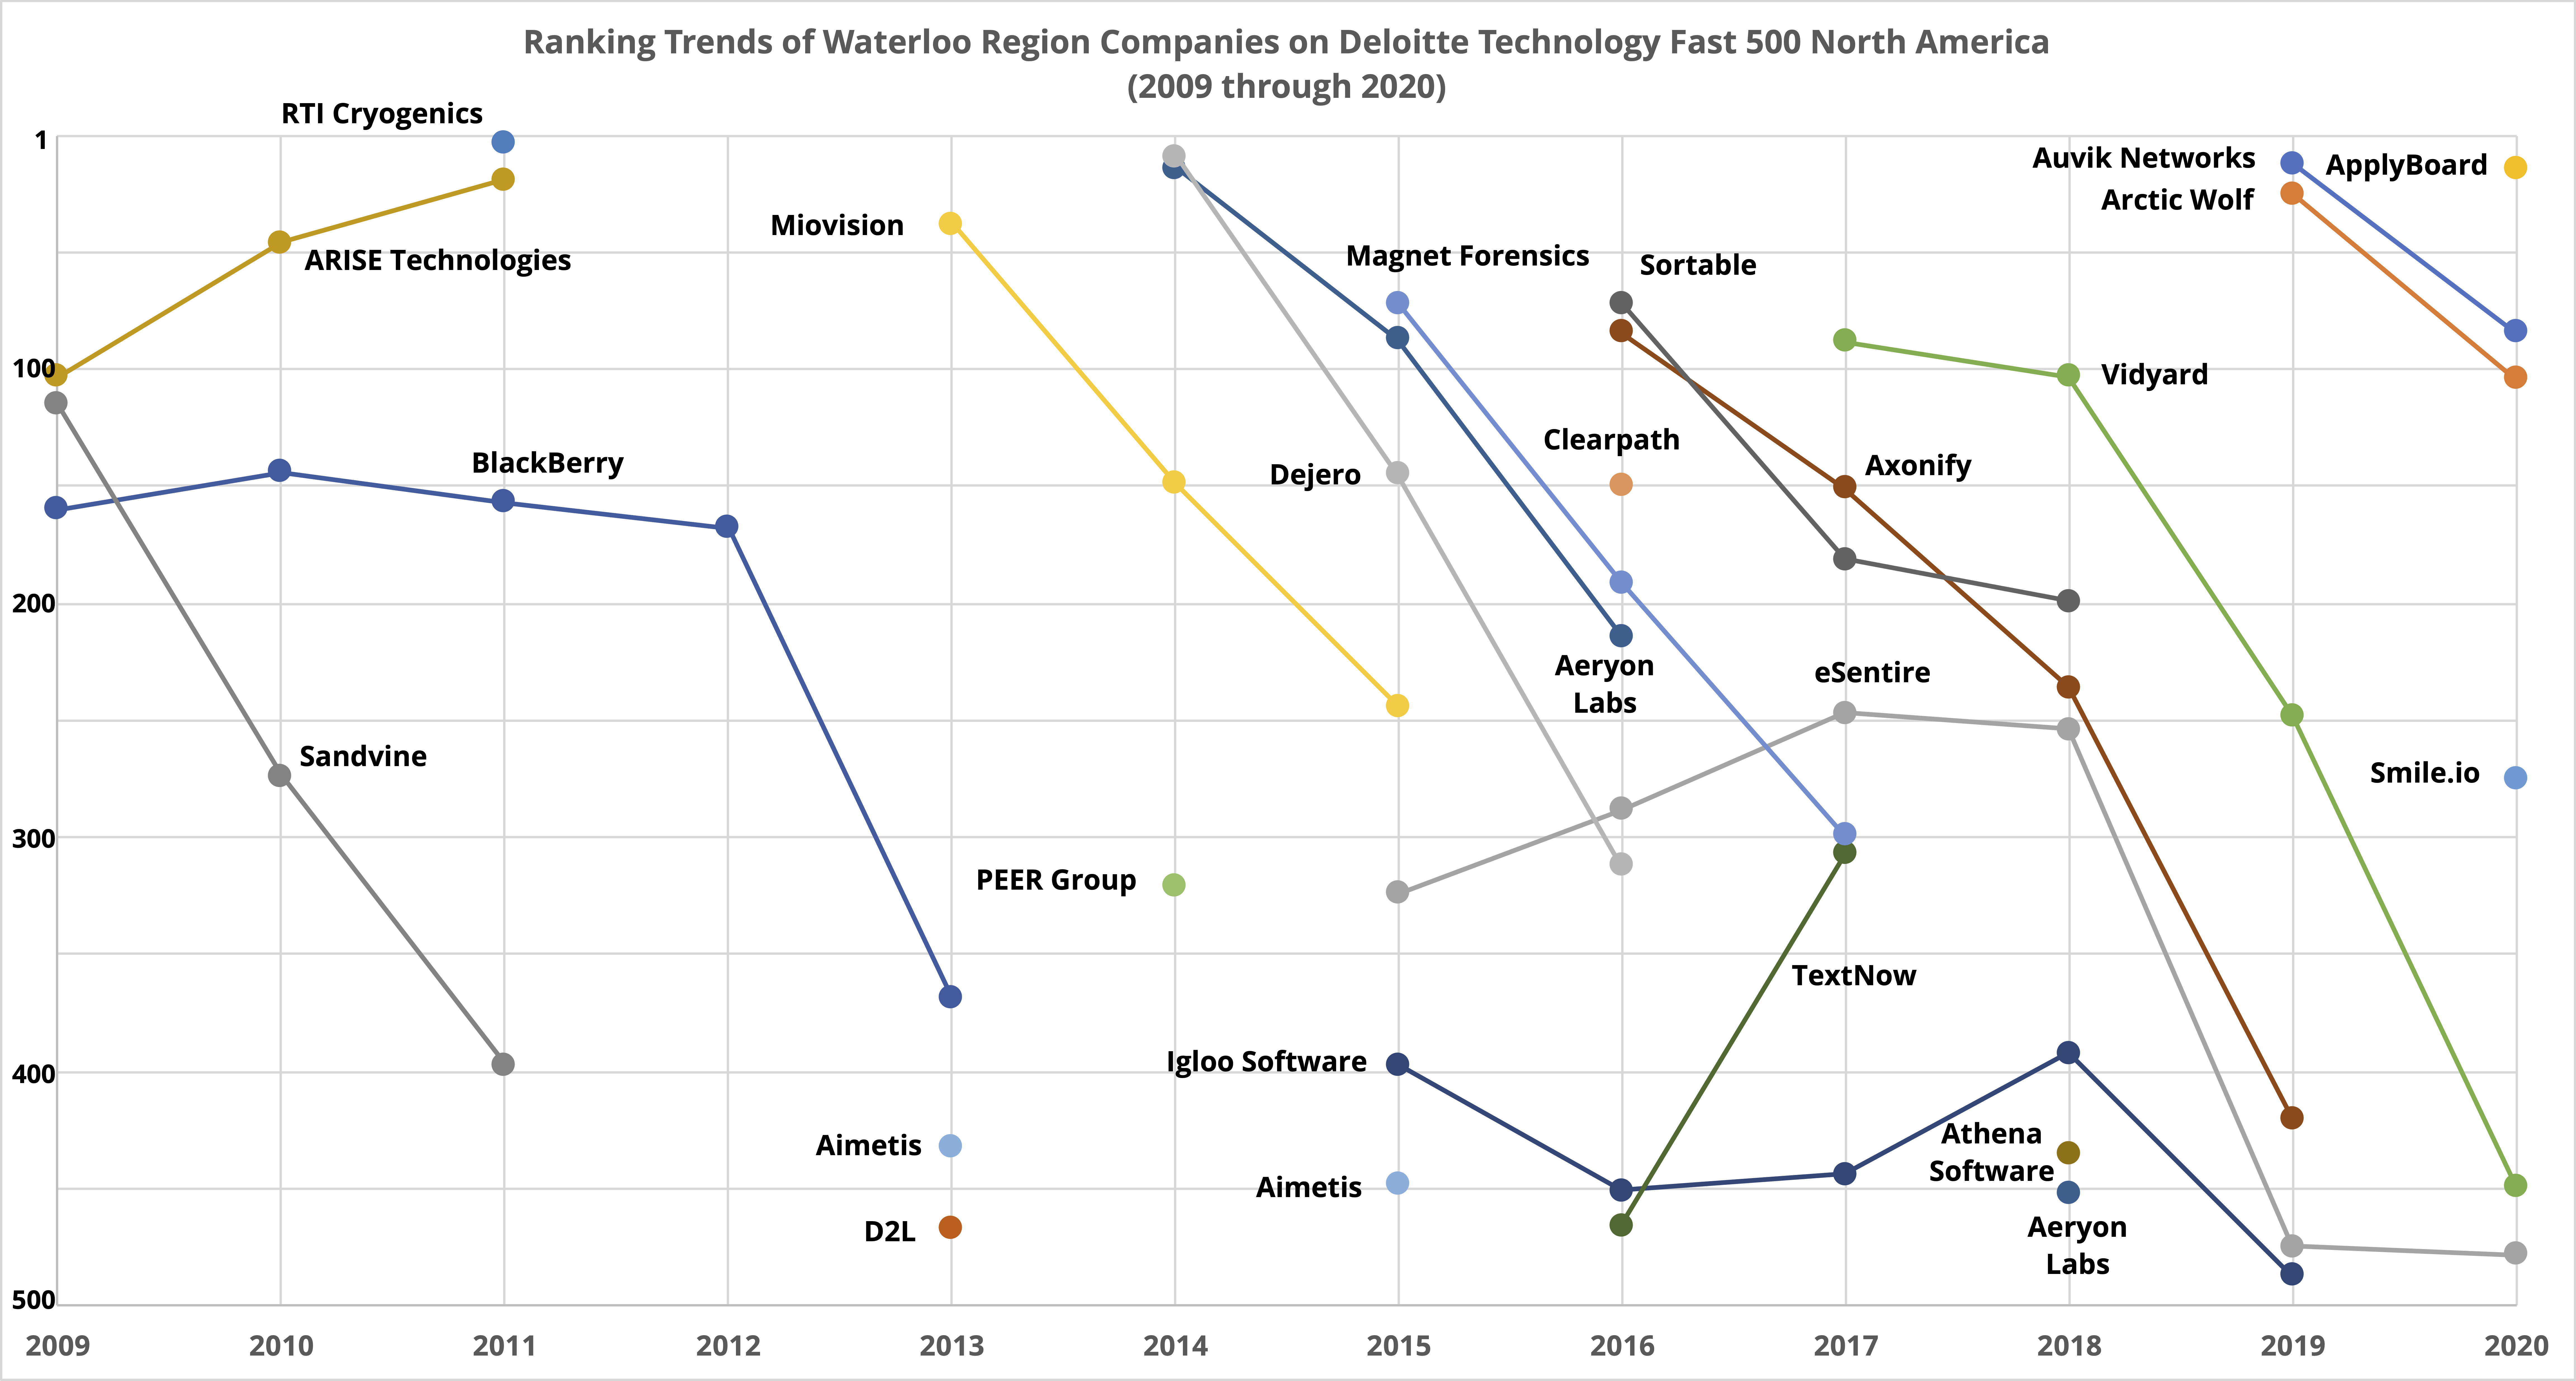 Historical rankings of Waterloo Region companies on the Deloitte Technology Fast 500 list from 2009 to 2020